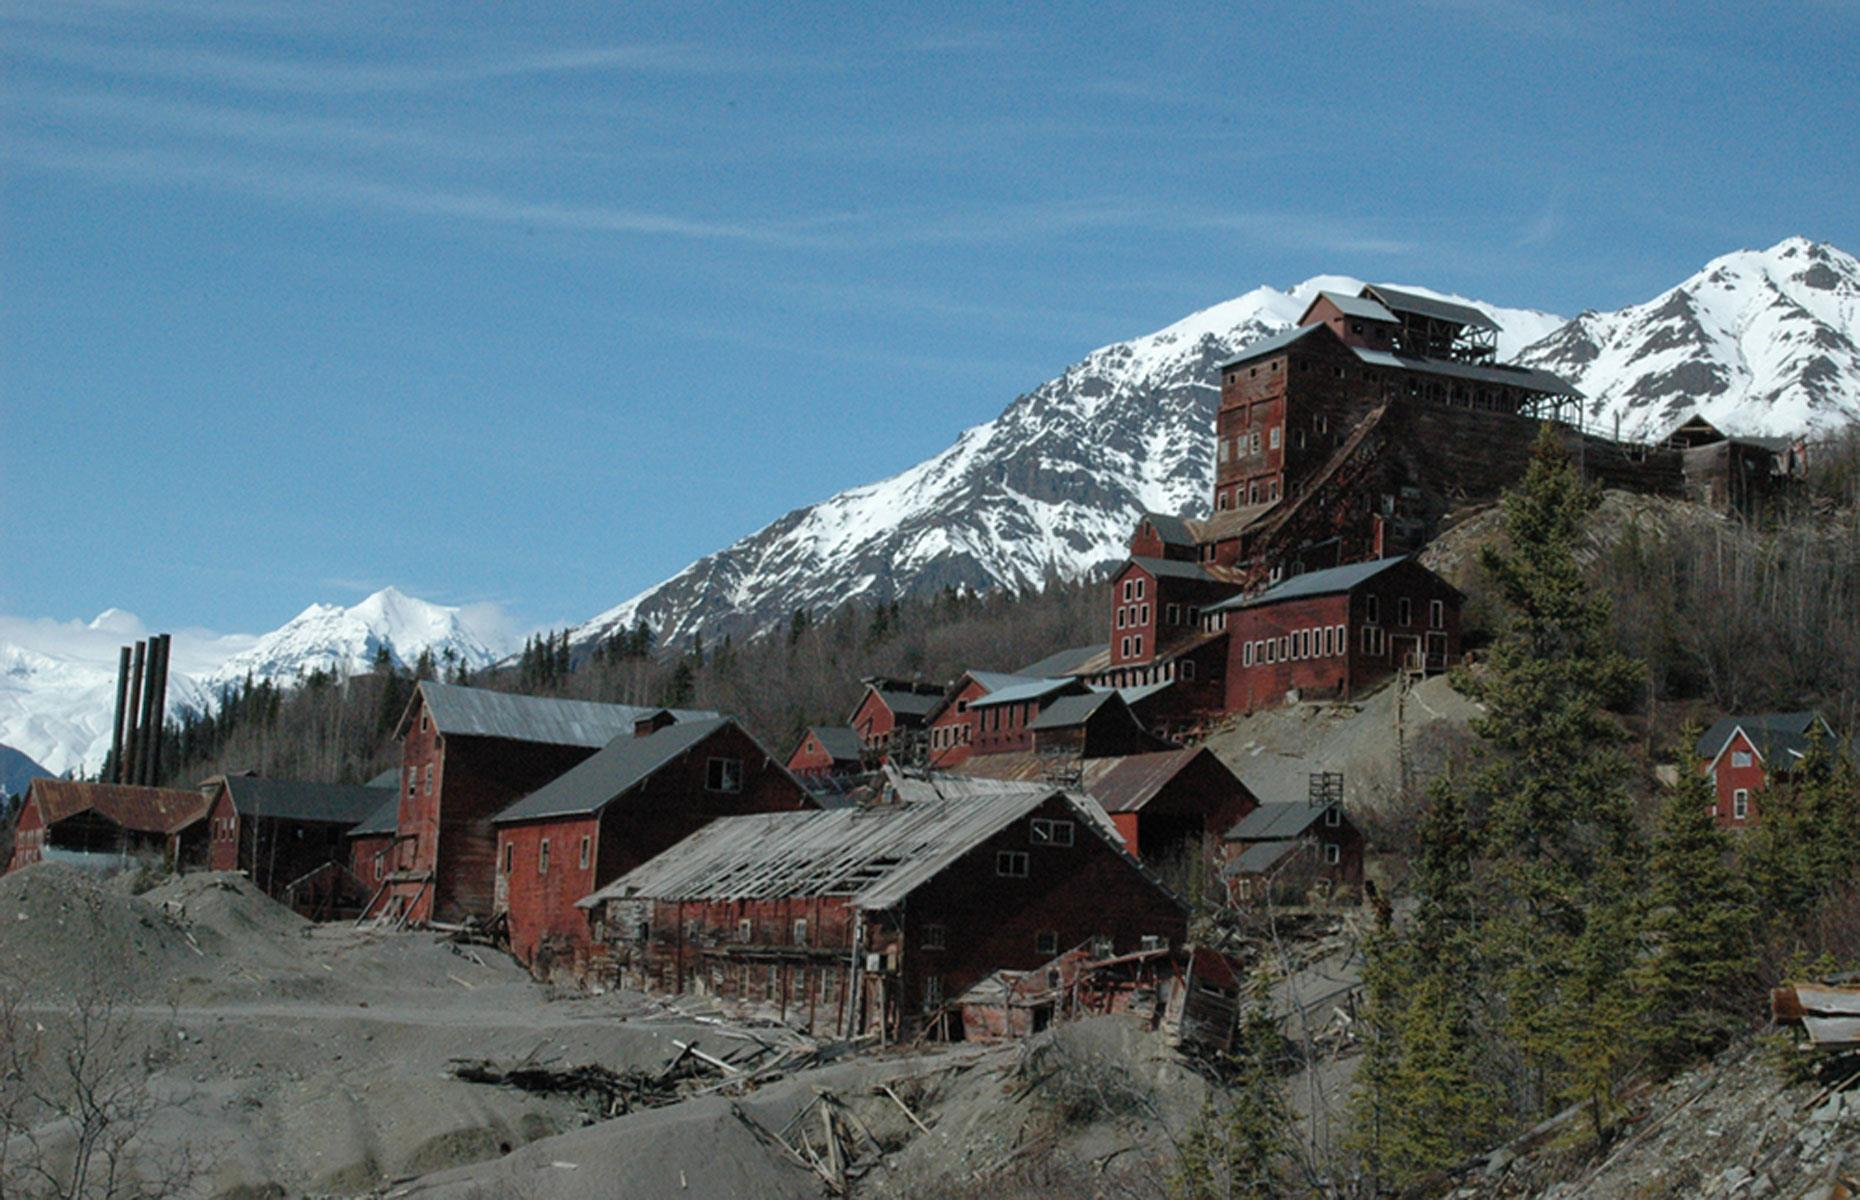 Slide 4 of 101: This imposing mining town in the south of the state was established in 1911. A hive of activity for a time, Kennecott produced millions of dollars' worth of copper ore – but these resources were soon depleted and the mine shut down for good in 1938.